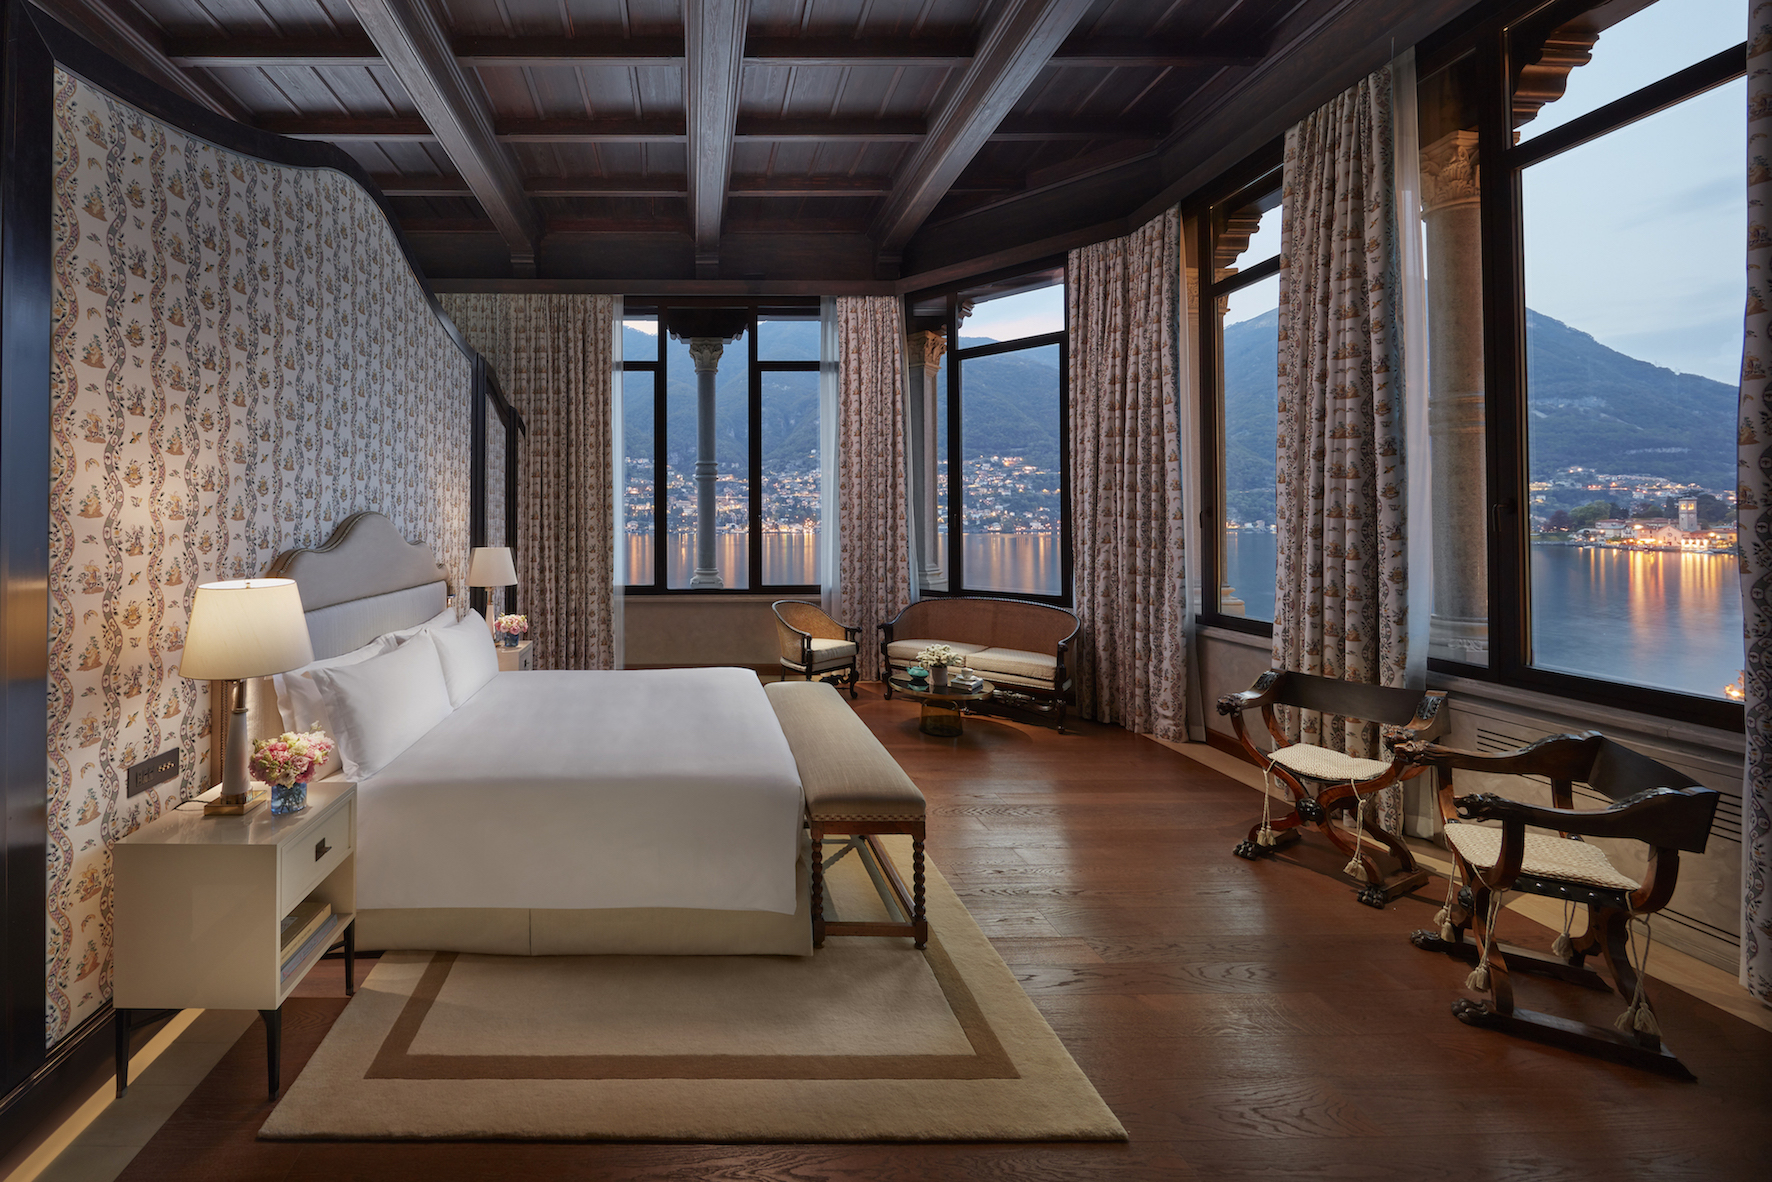 Self isolate in the Mandarin Oriental Lake Como penthouse suite with breathtaking views of the lake.